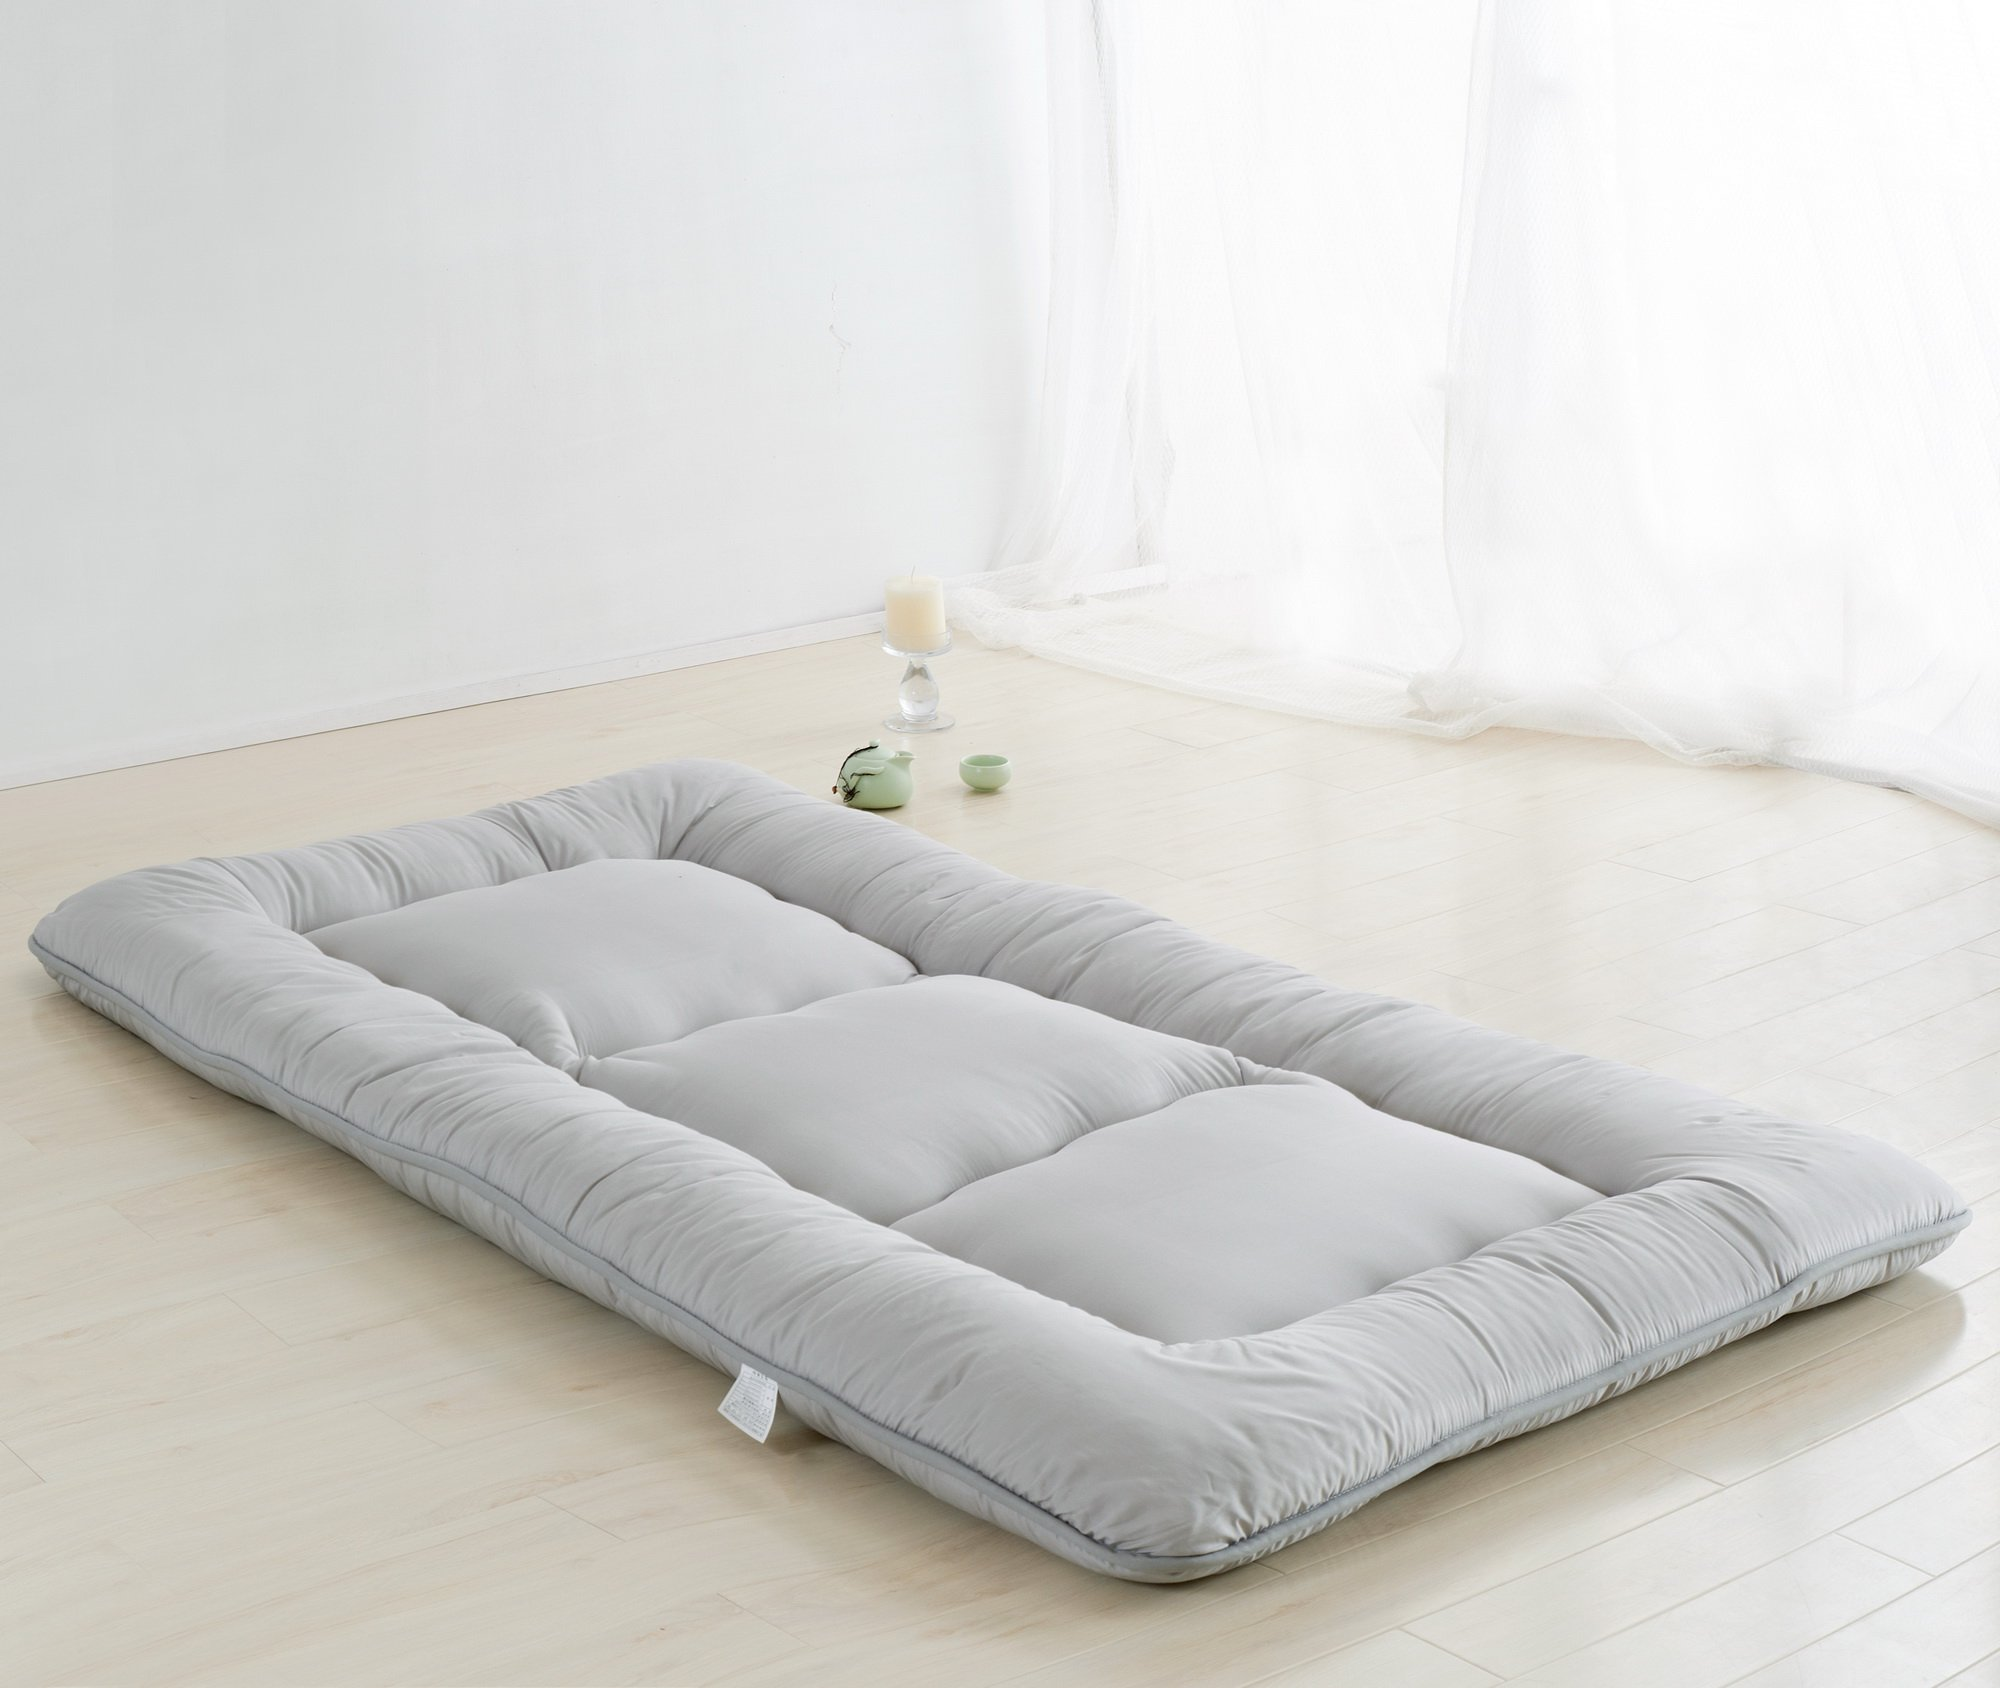 Light Grey Futon Tatami Mat Japanese Futon Mattress Cheap Futons For Sale Luxury Bedding Christmas Gift Idea, Twin Size